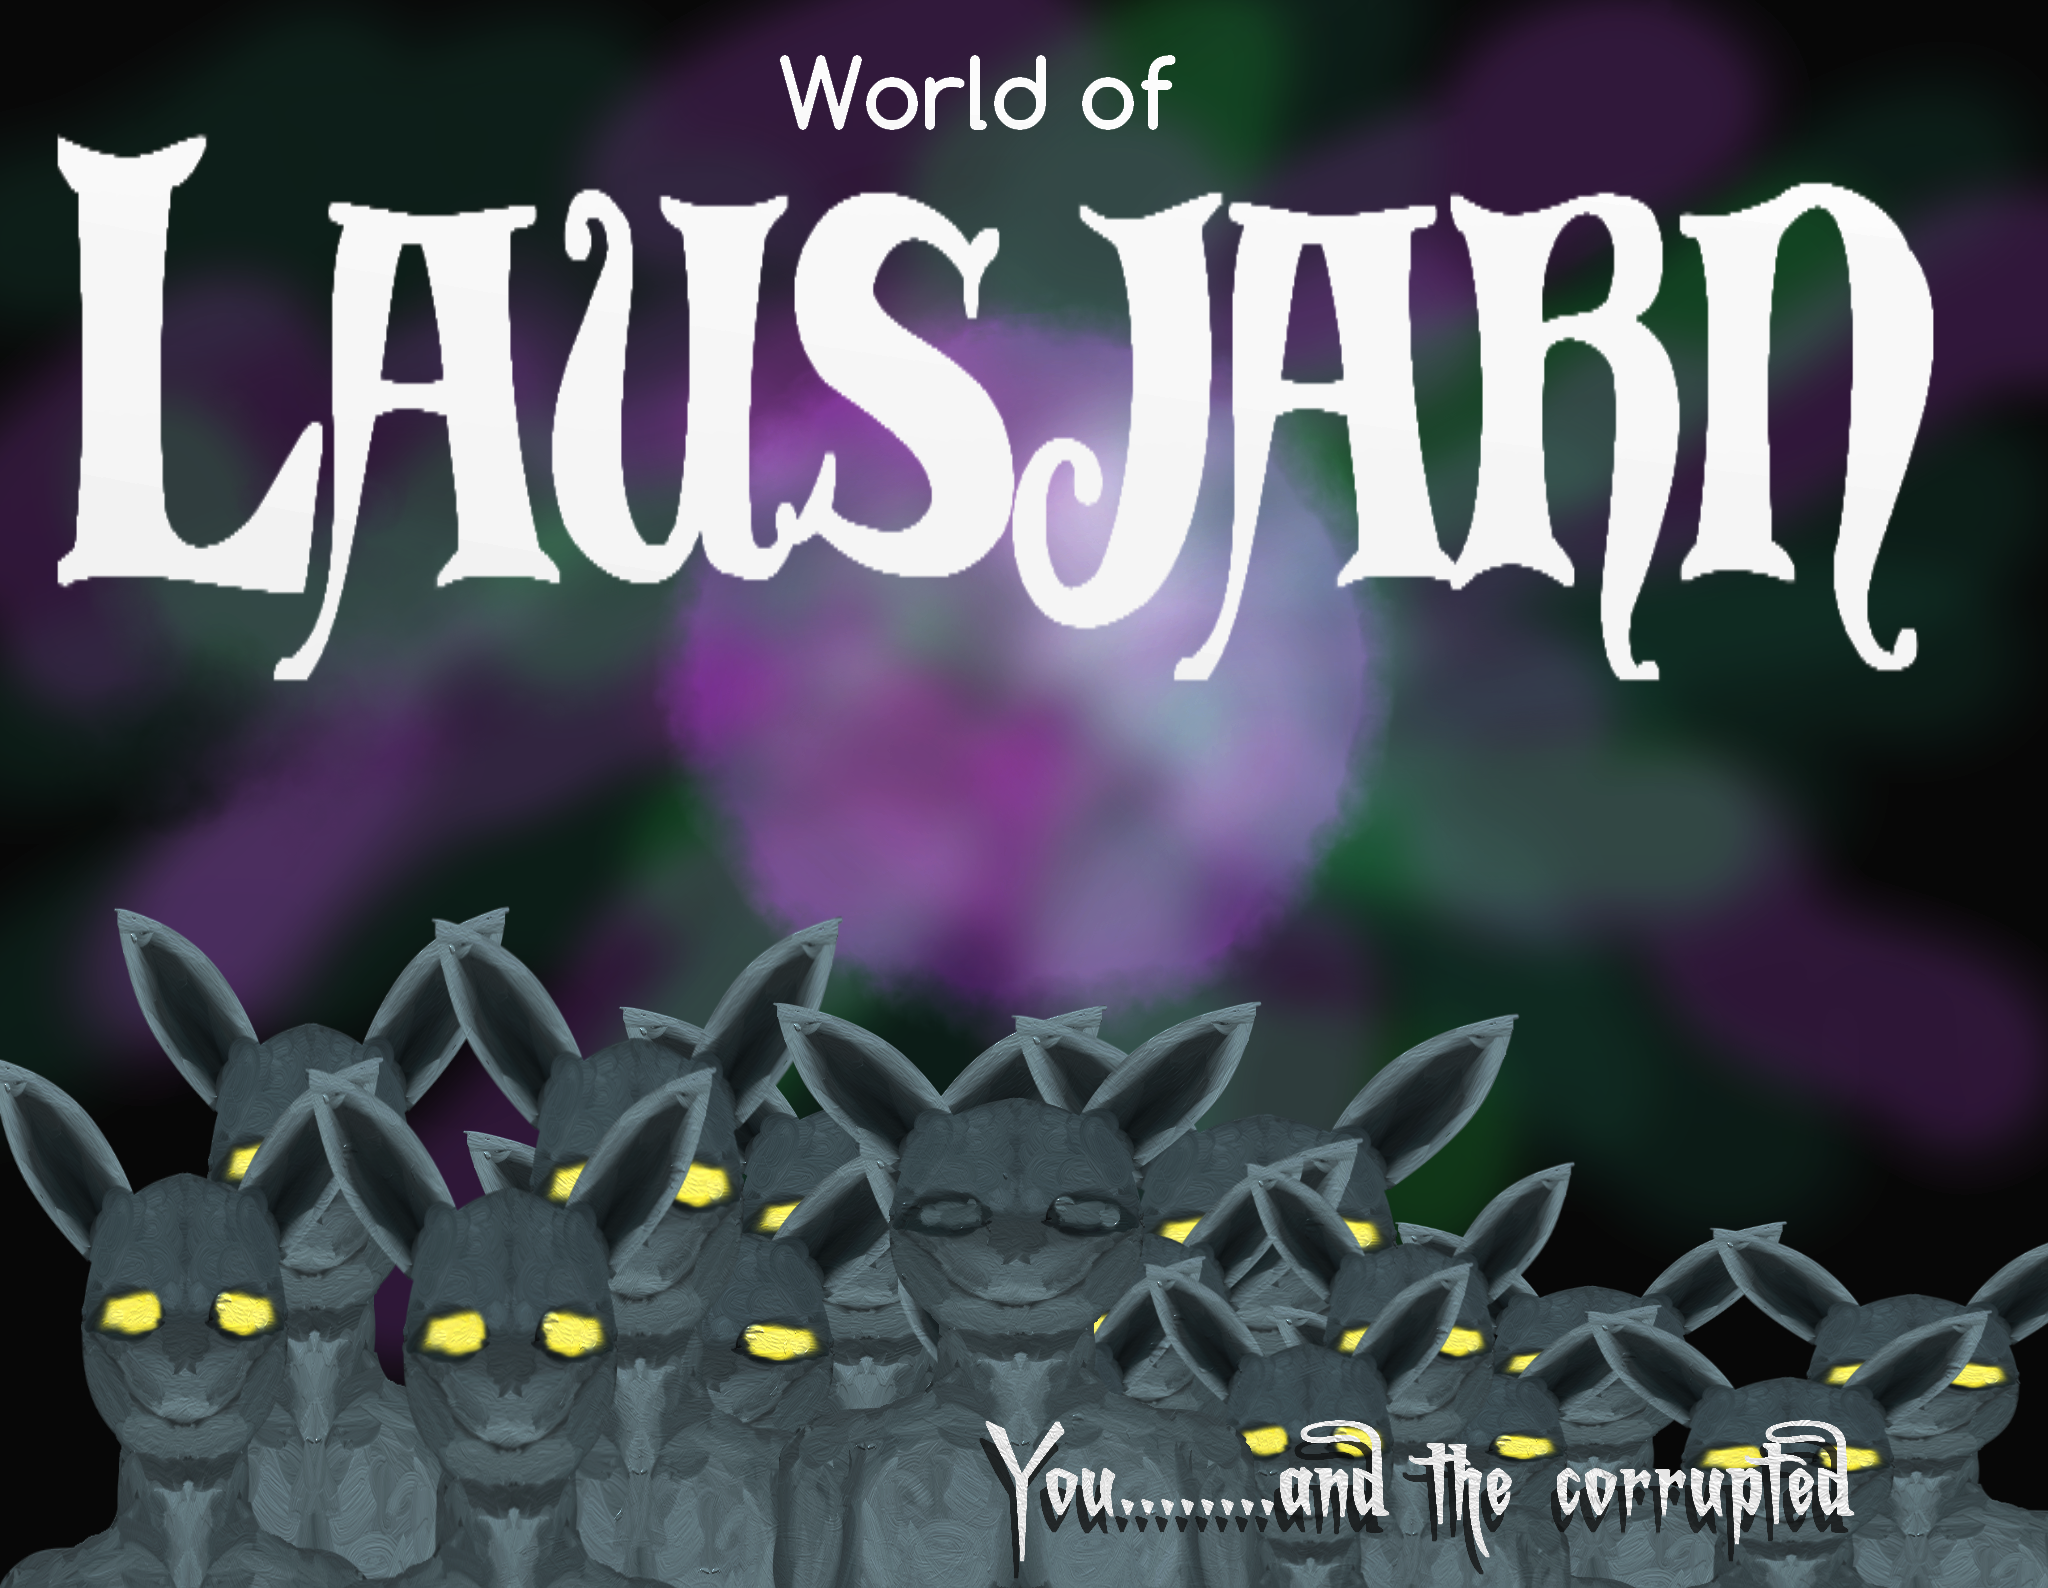 World of Lausjarn